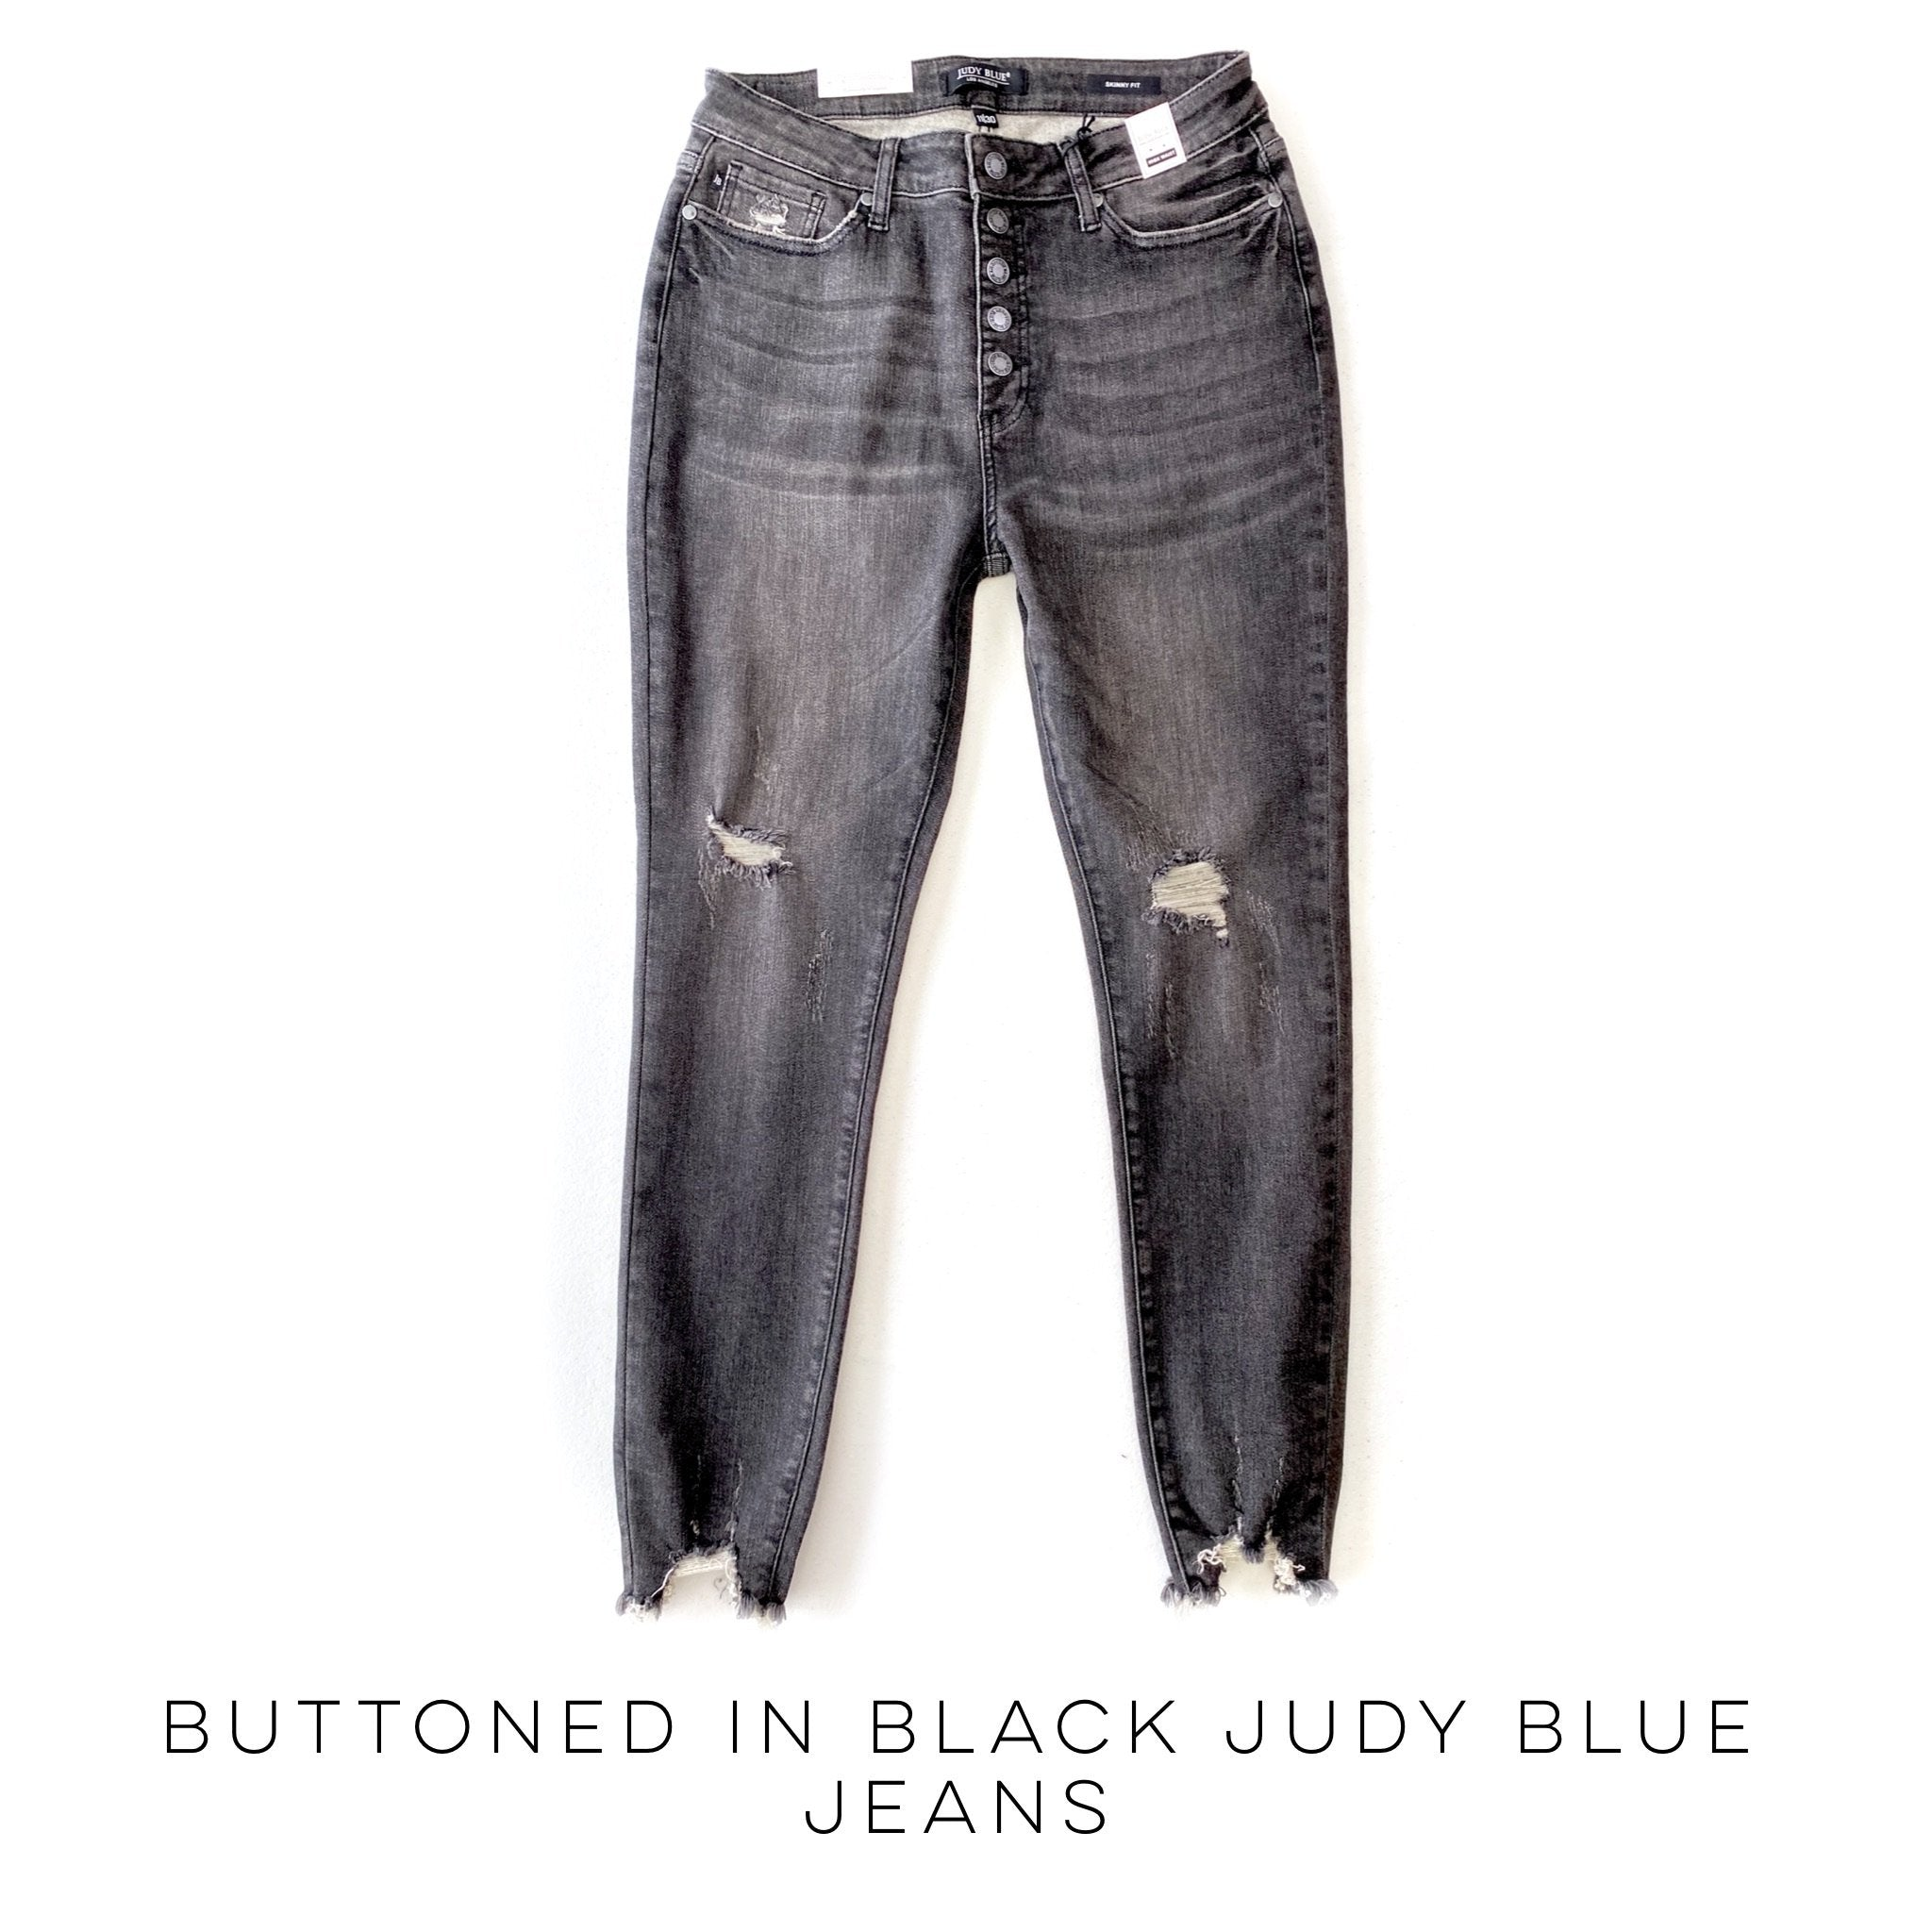 Judy Blue Button Fly Gray Jeans